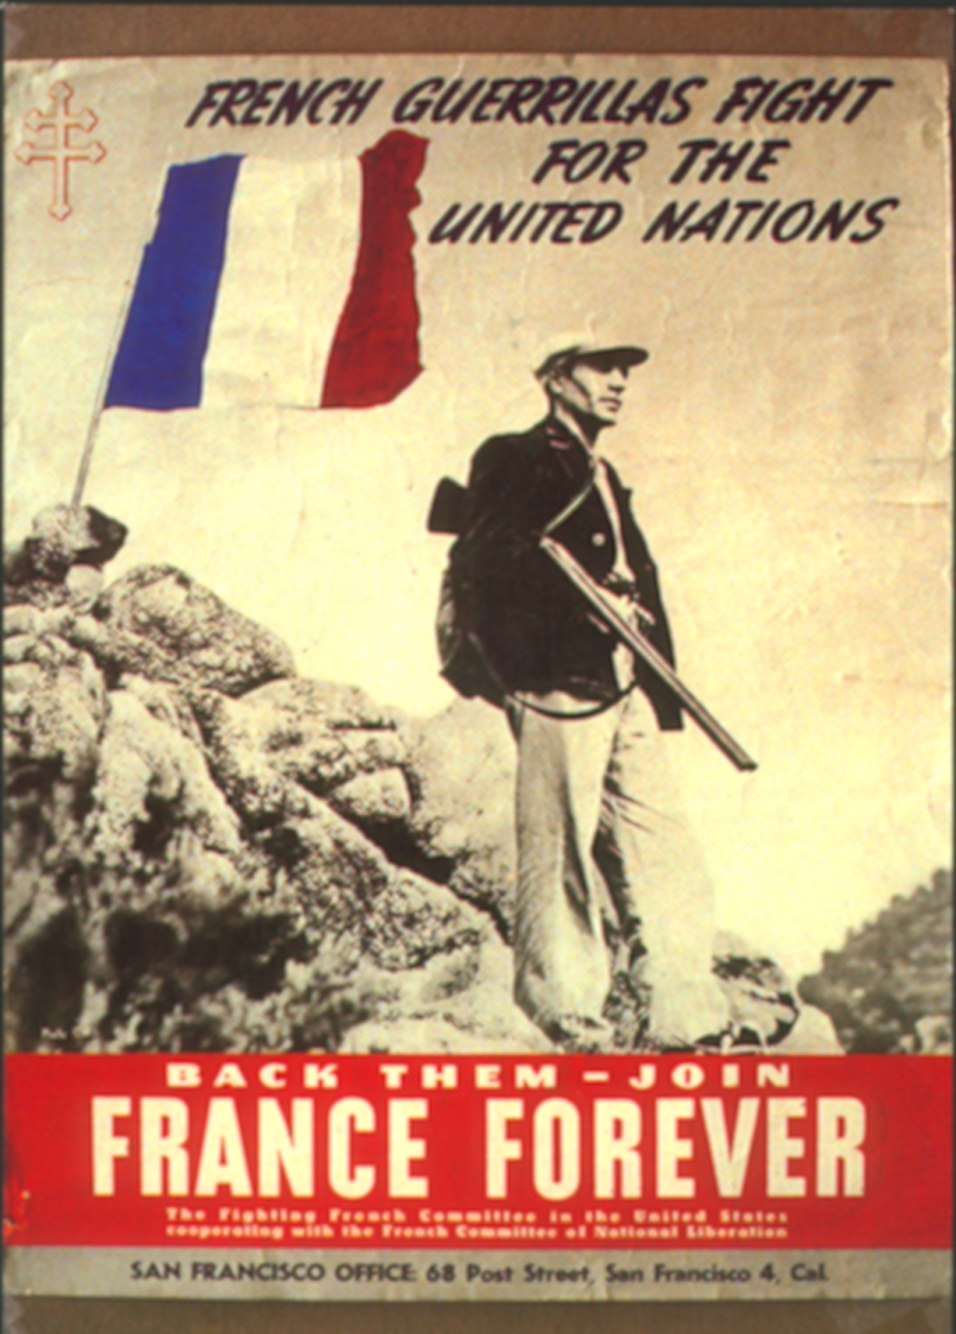 French guerrillas fight for the United Nations